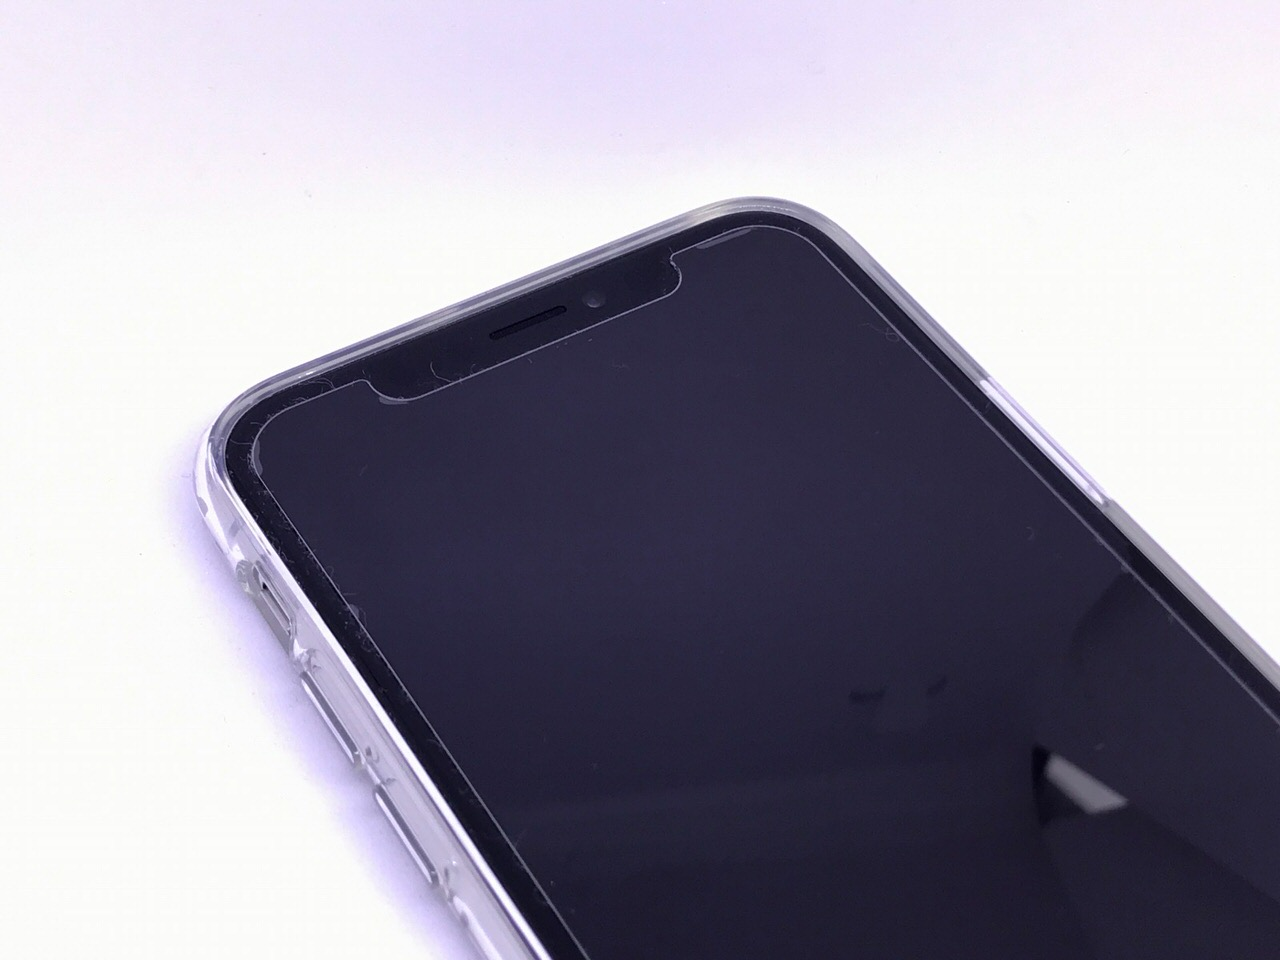 Iphone x firstimpresion 0446